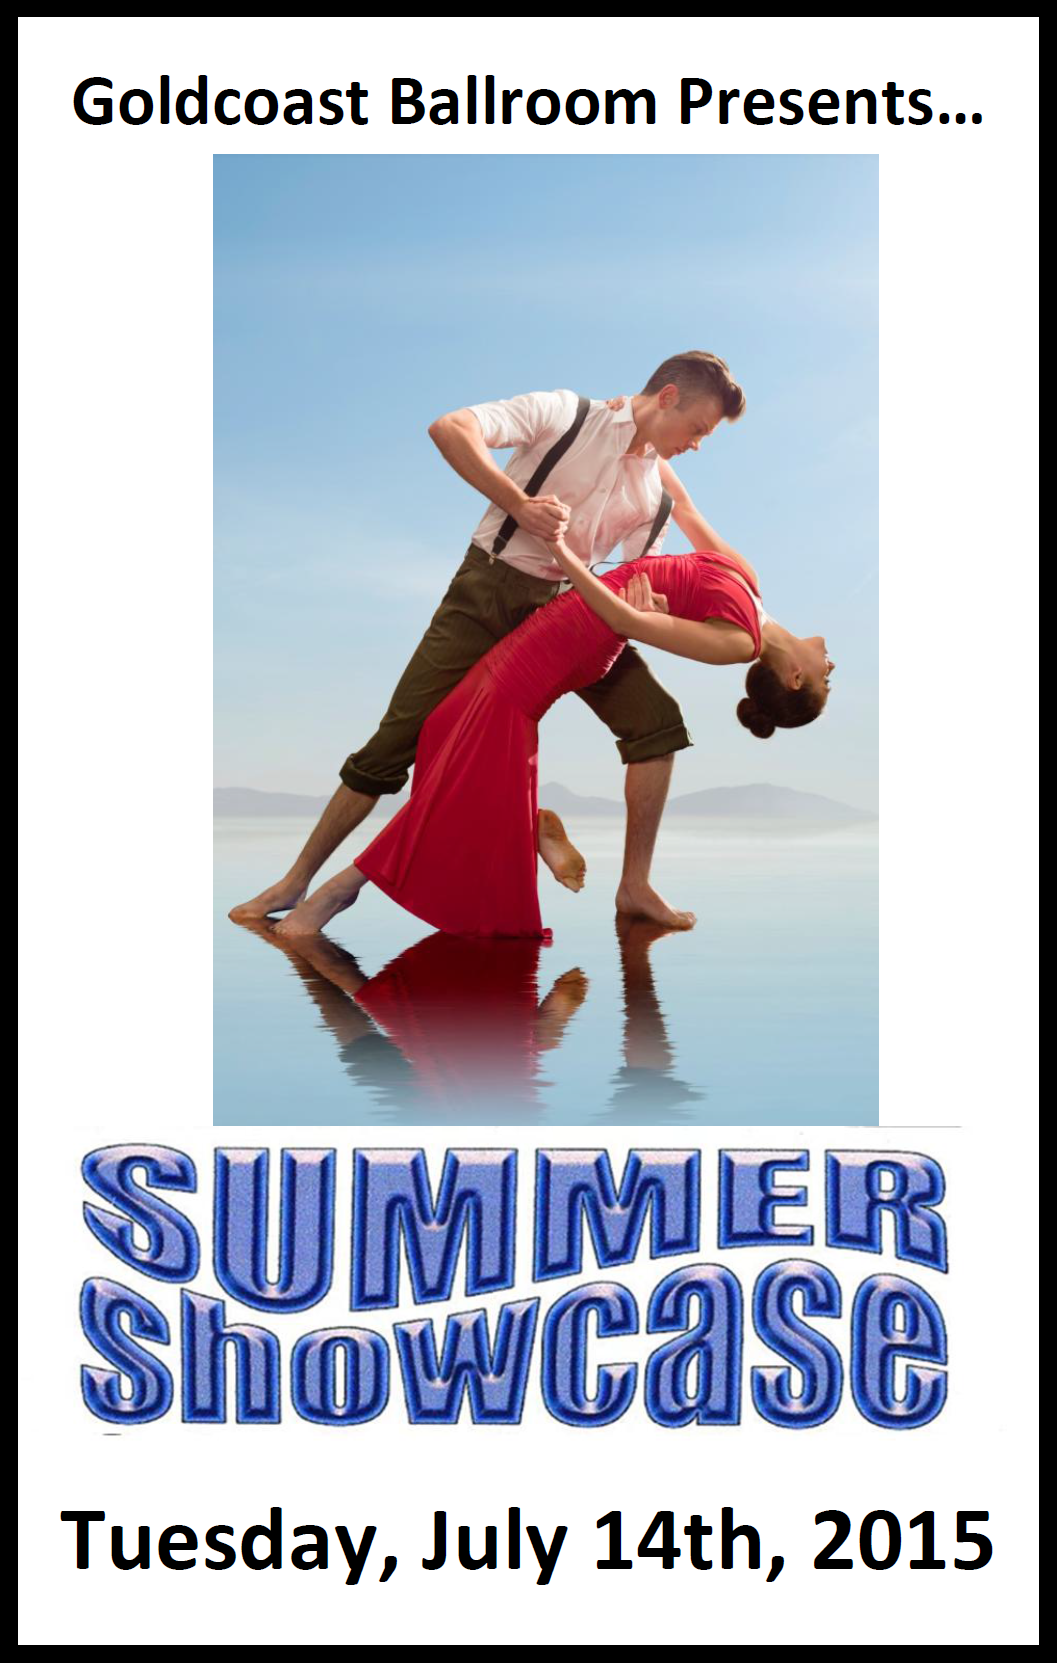 Goldcoast Ballroom Presents Summer Showcase - July 14, 2015